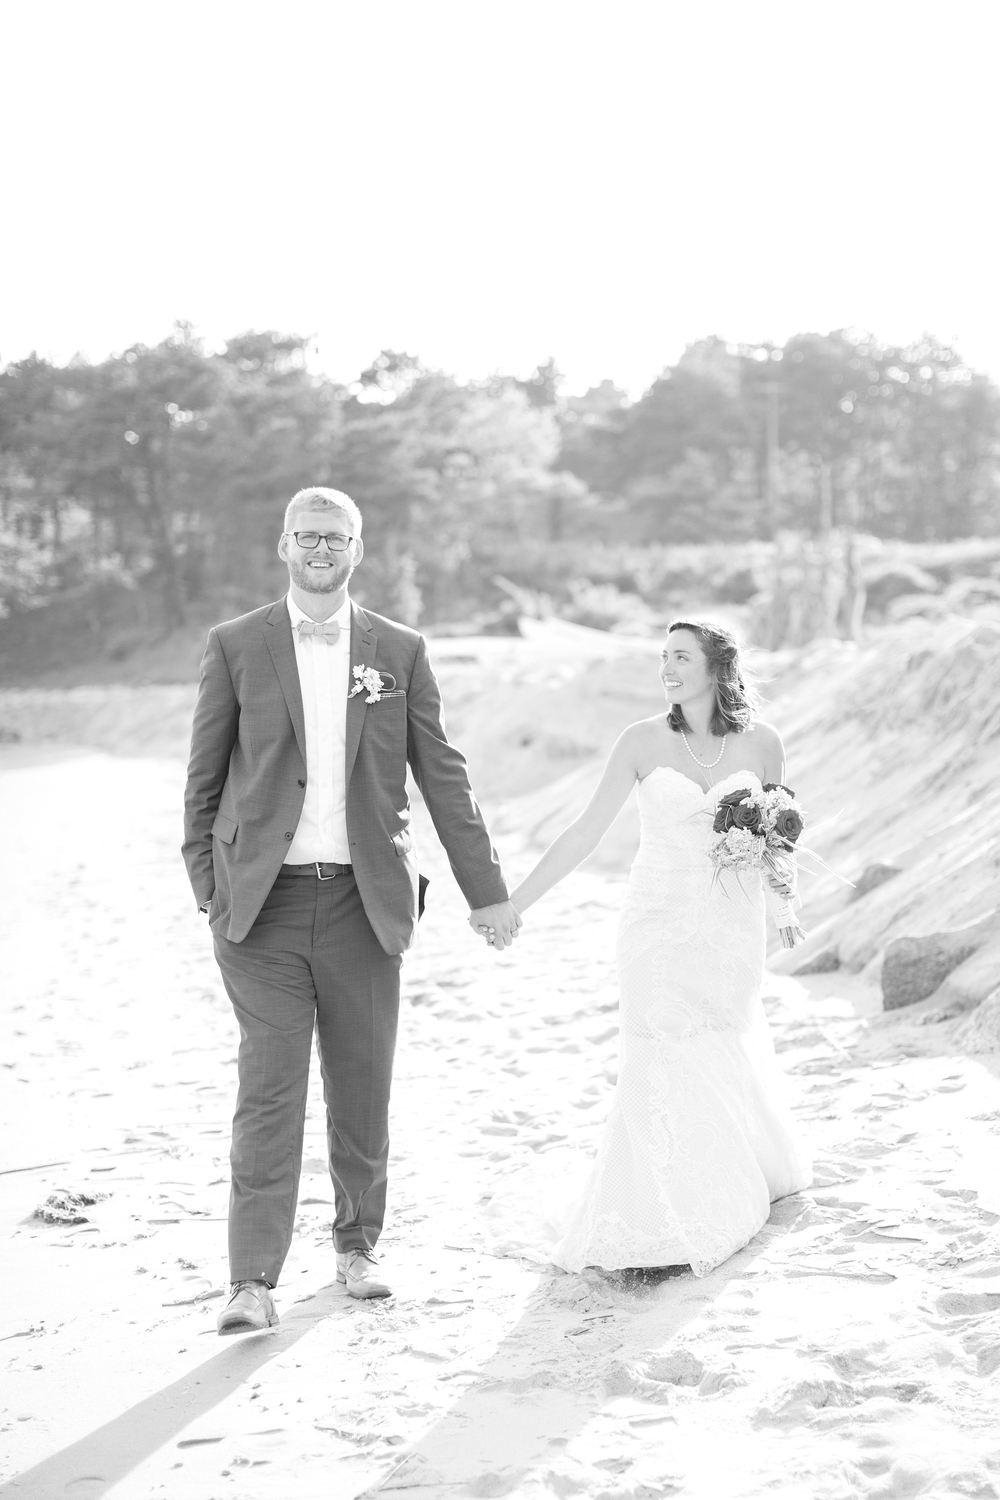 Goodman 3-Bride & Groom Portraits-882_anna grace photography wellfleet cape cod massachusetts destination wedding photographer Chequessett Yacht and Country Club wedding photo.jpg